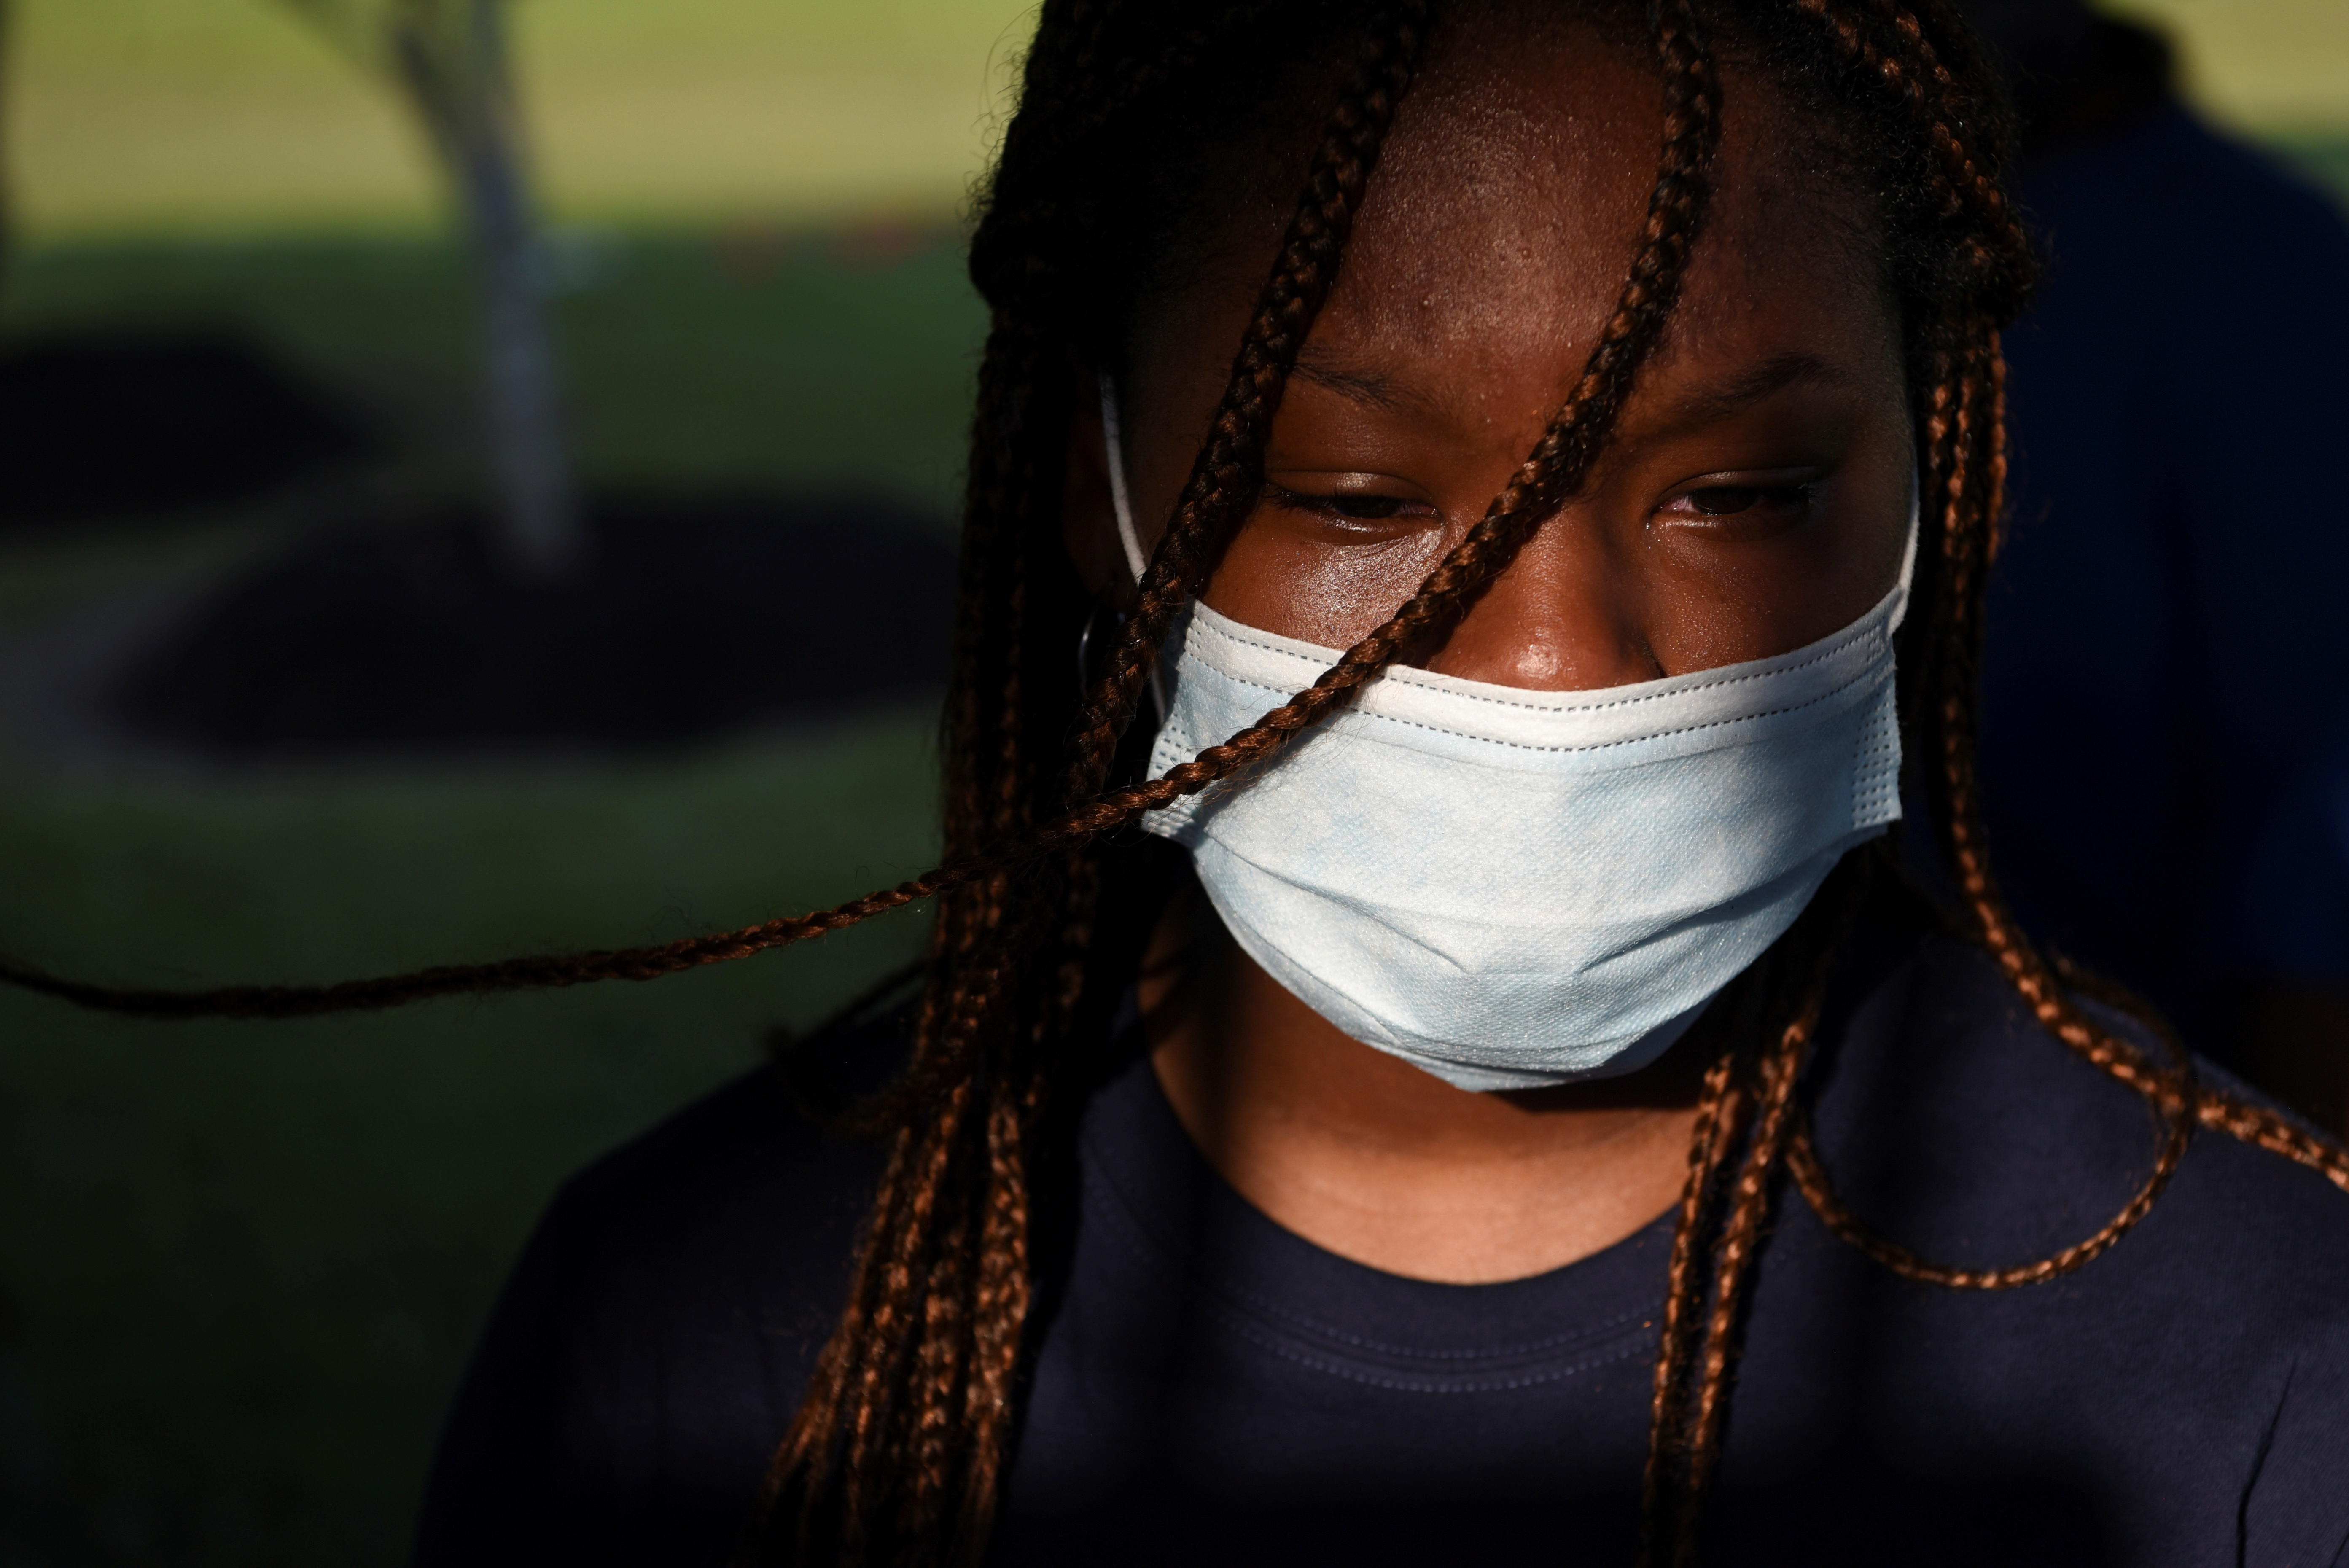 A young woman sheds a tear as people visit the gravesite of George Floyd, whose death in Minneapolis police custody has sparked nationwide protests against racial inequality, in Pearland, Texas, U.S., June 9, 2020. REUTERS/Callaghan O'Hare - RC216H97NFT4